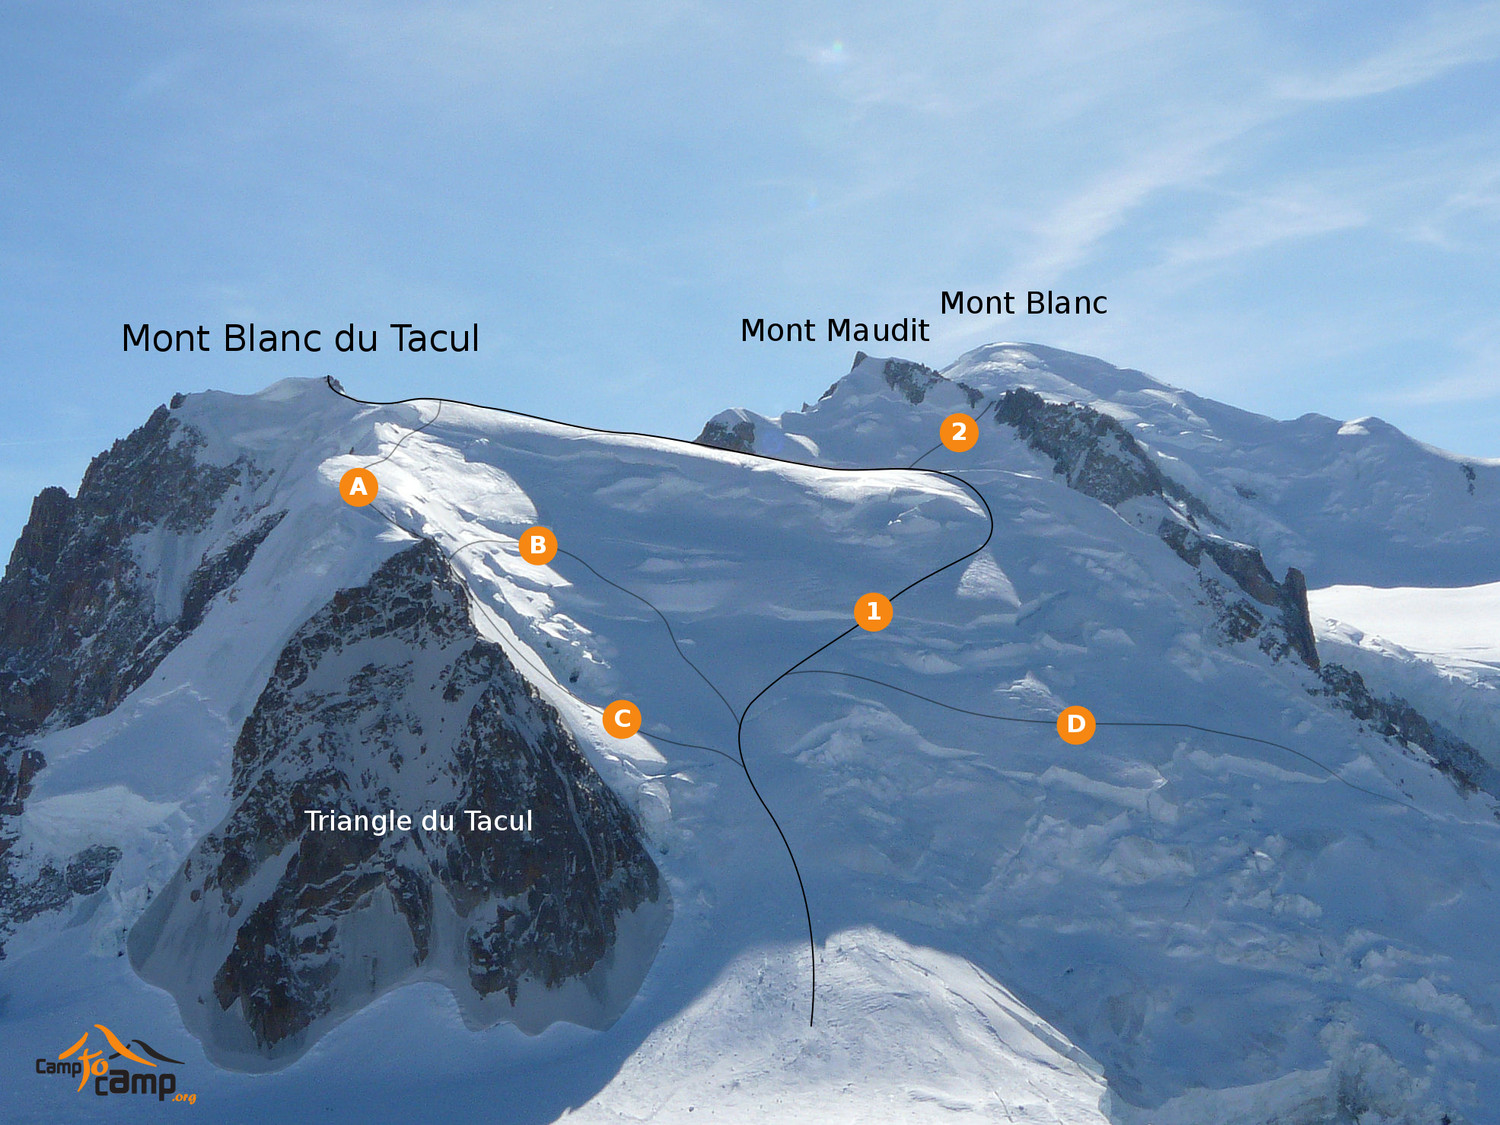 Mont Blanc du Tacul, North Face